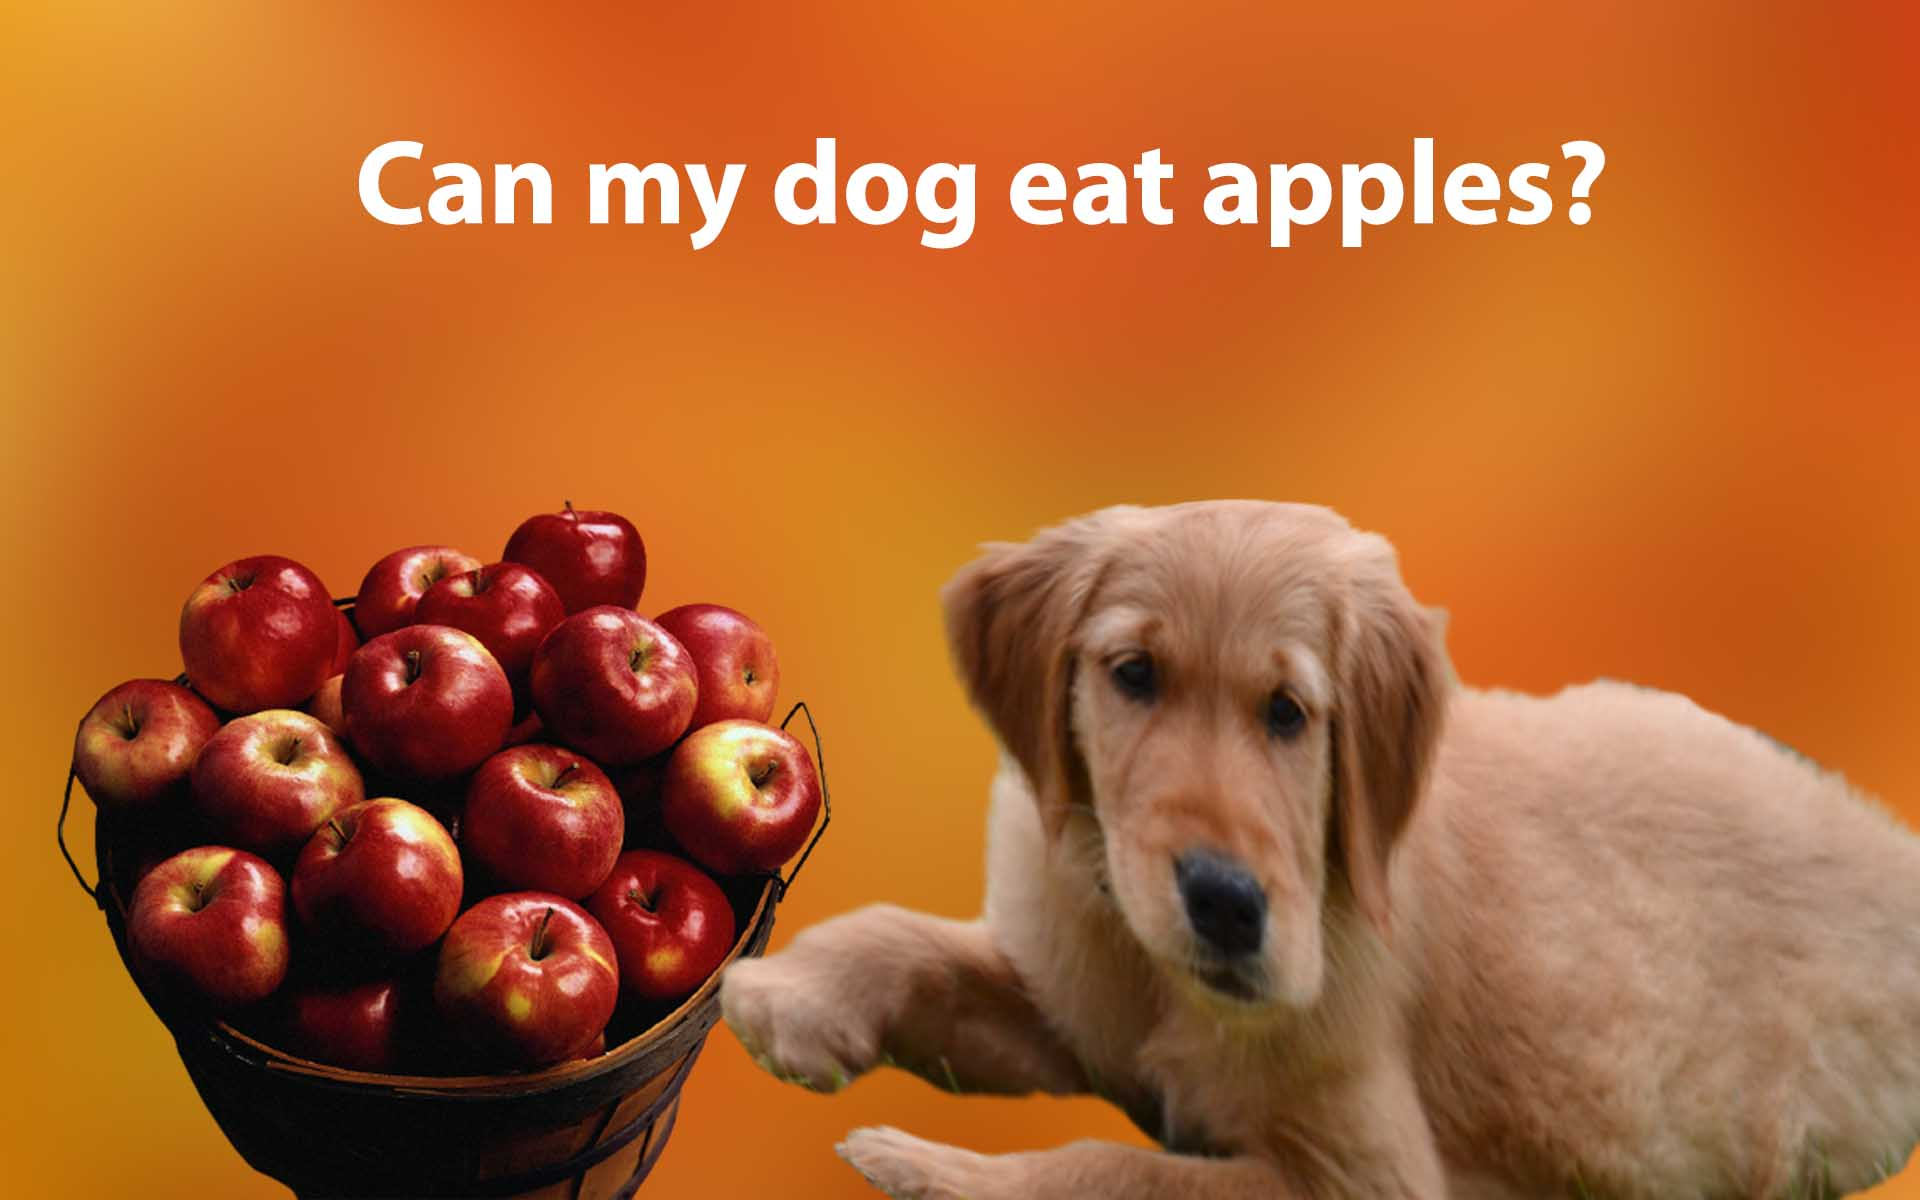 Can my dog eat apples? Is it safe for dogs to eat apples?